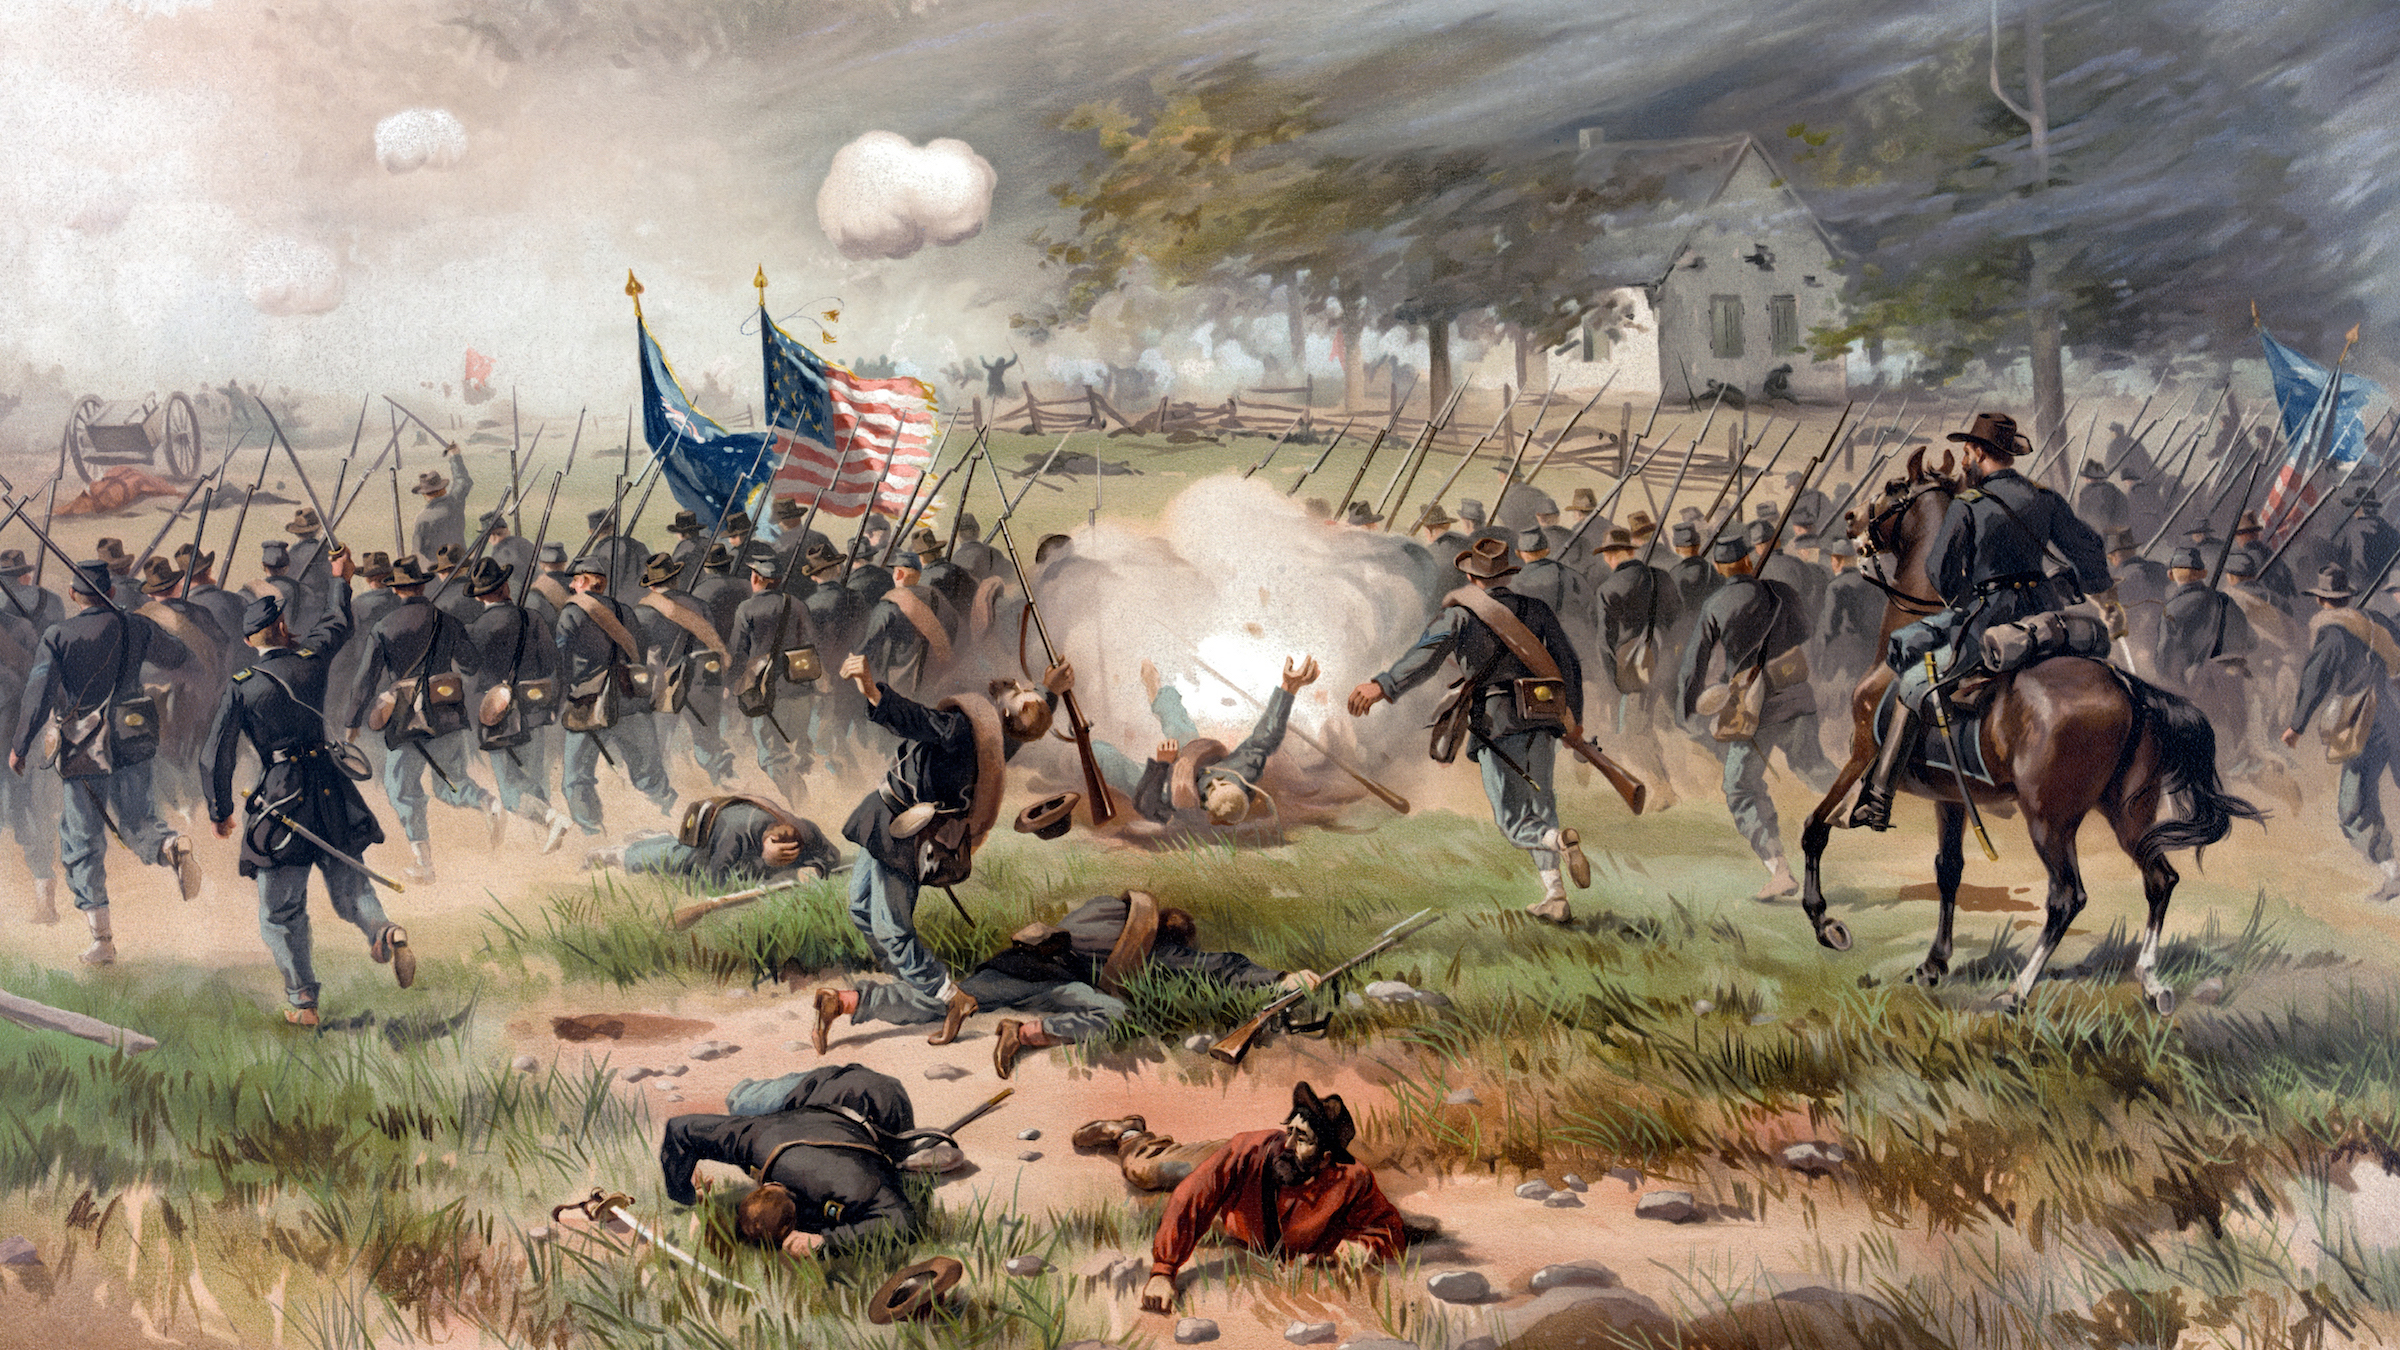 What was the deadliest day in US history? What was the deadliest day in US history? F6tdfc7Qwe3JkSiW2k7yrH